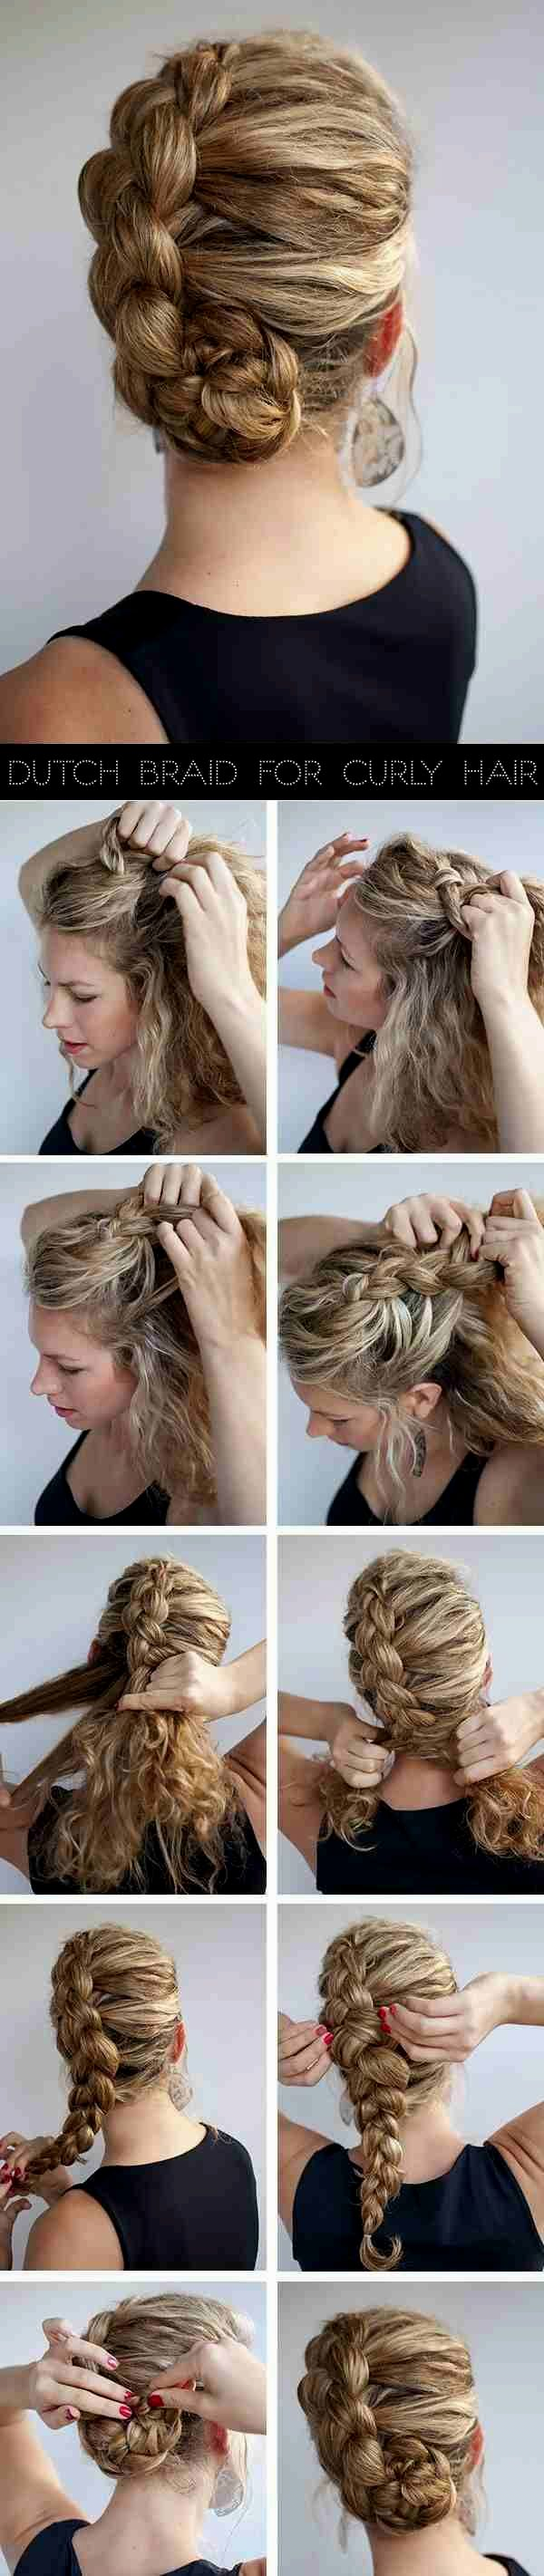 elegant hair braiding on the head guide portrait-Amazing Hair Braiding On Head Instruction Reviews